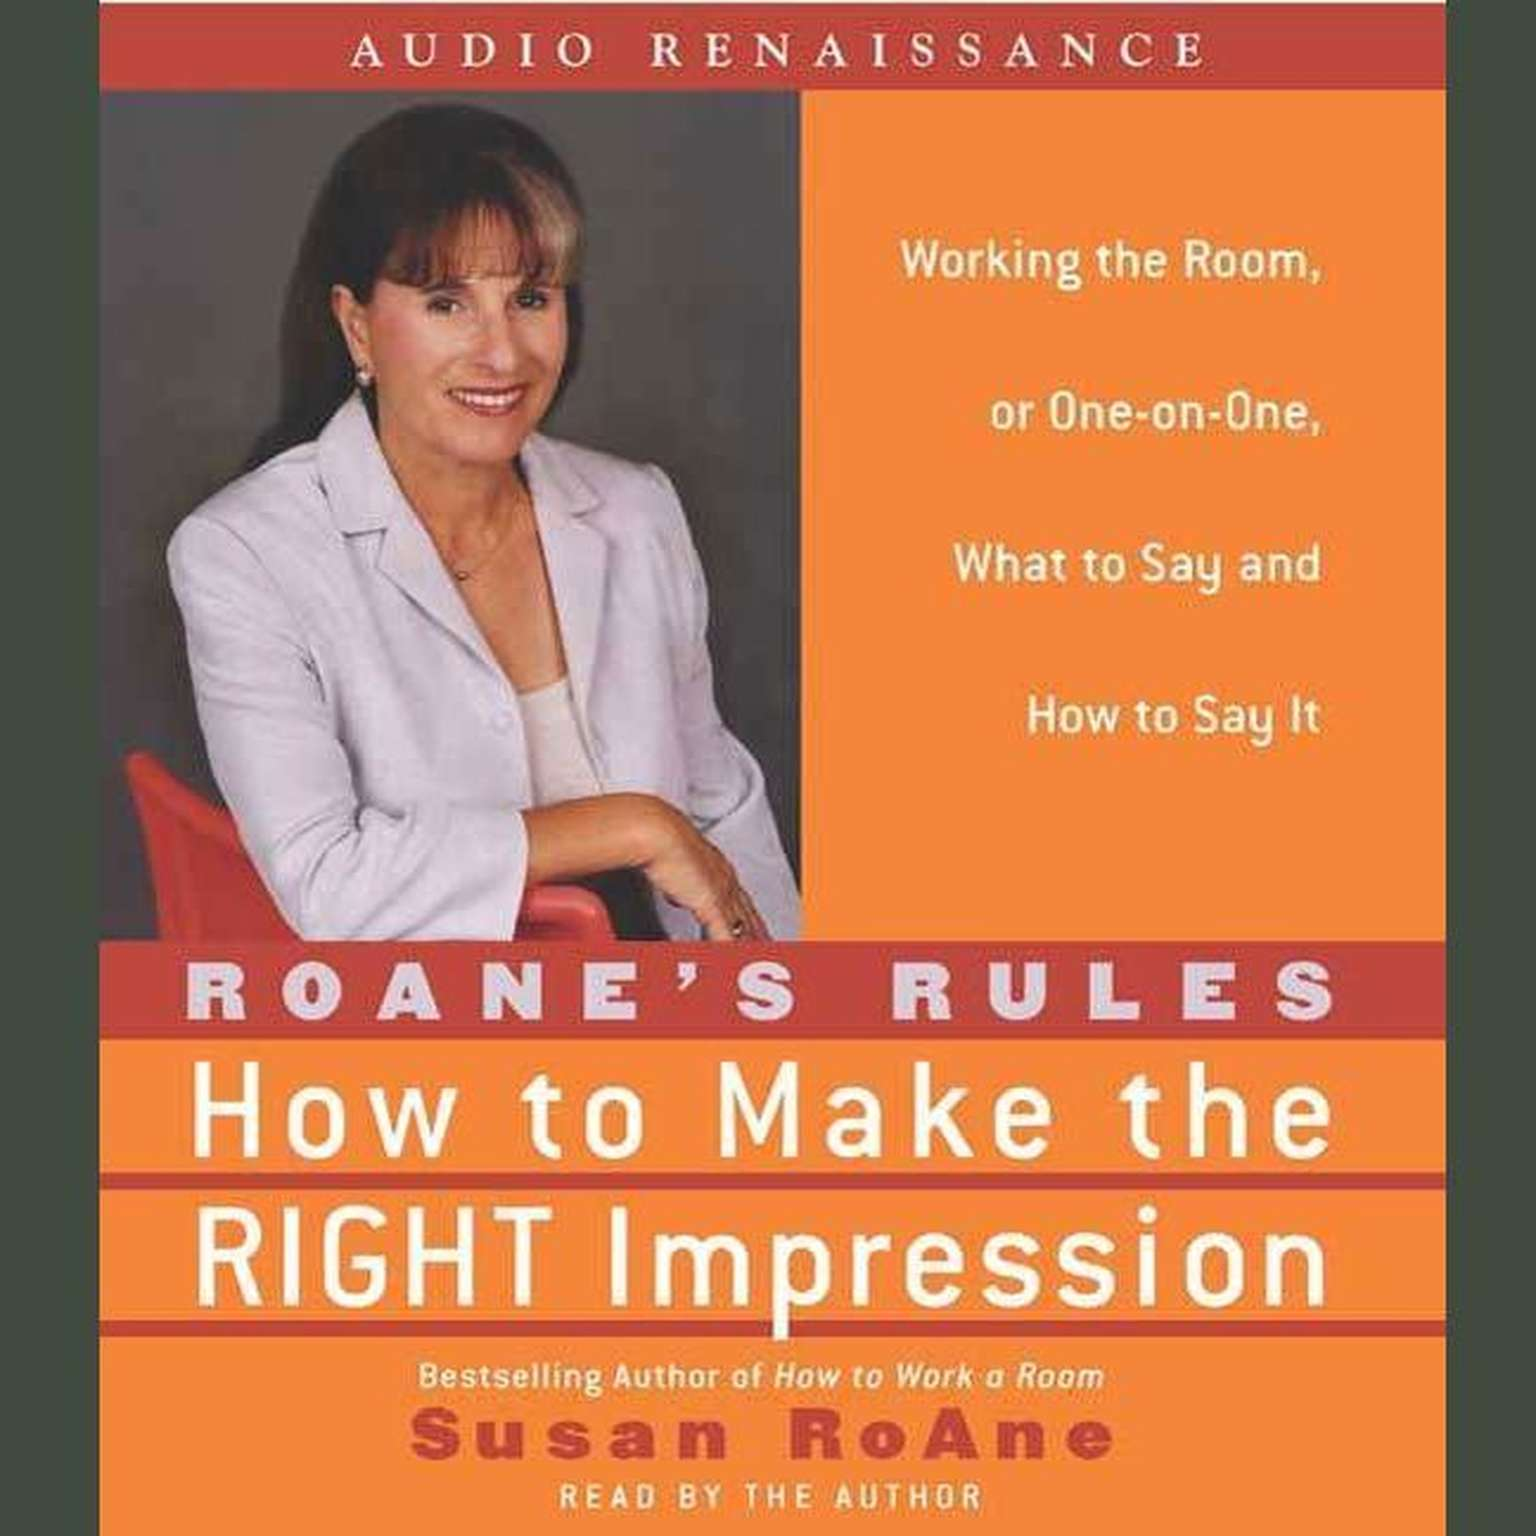 Printable RoAne's Rules: How to Make the Right Impression: Working the Room, or One-on-One,What to Say and How to Say It Audiobook Cover Art